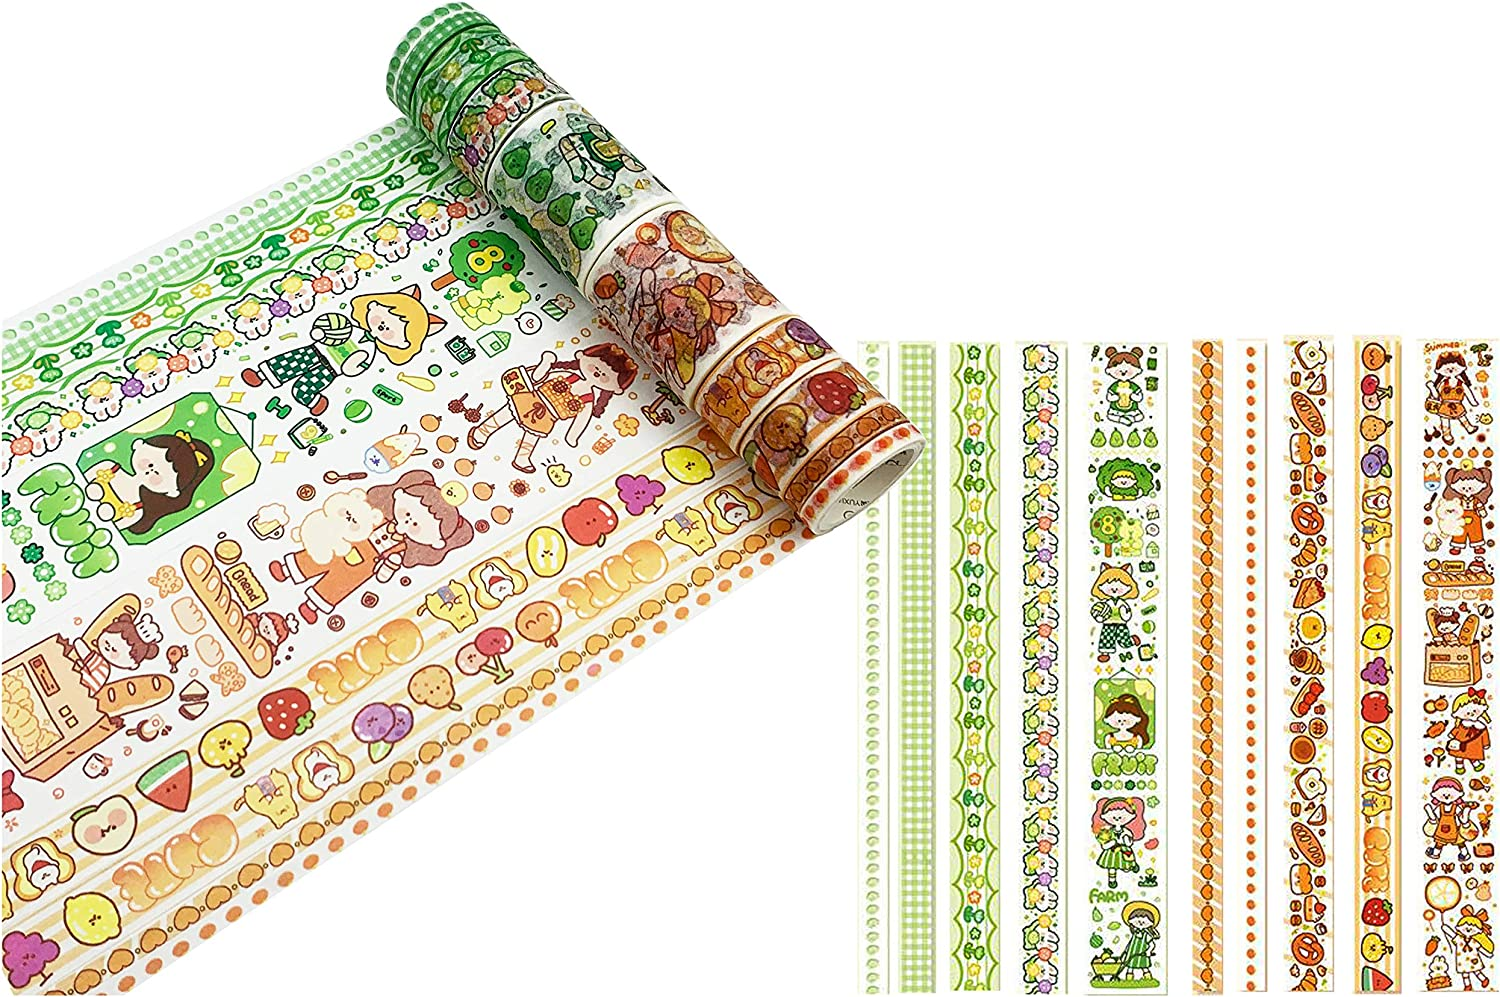 HIYOU-Home Japanese Practical Wood Grain Washi Tape for Arts and DIY Crafts, Scrapbooking, Bullet Journal, Planner, Gift Wrapping, Holiday Decoration (Merry Christmas)